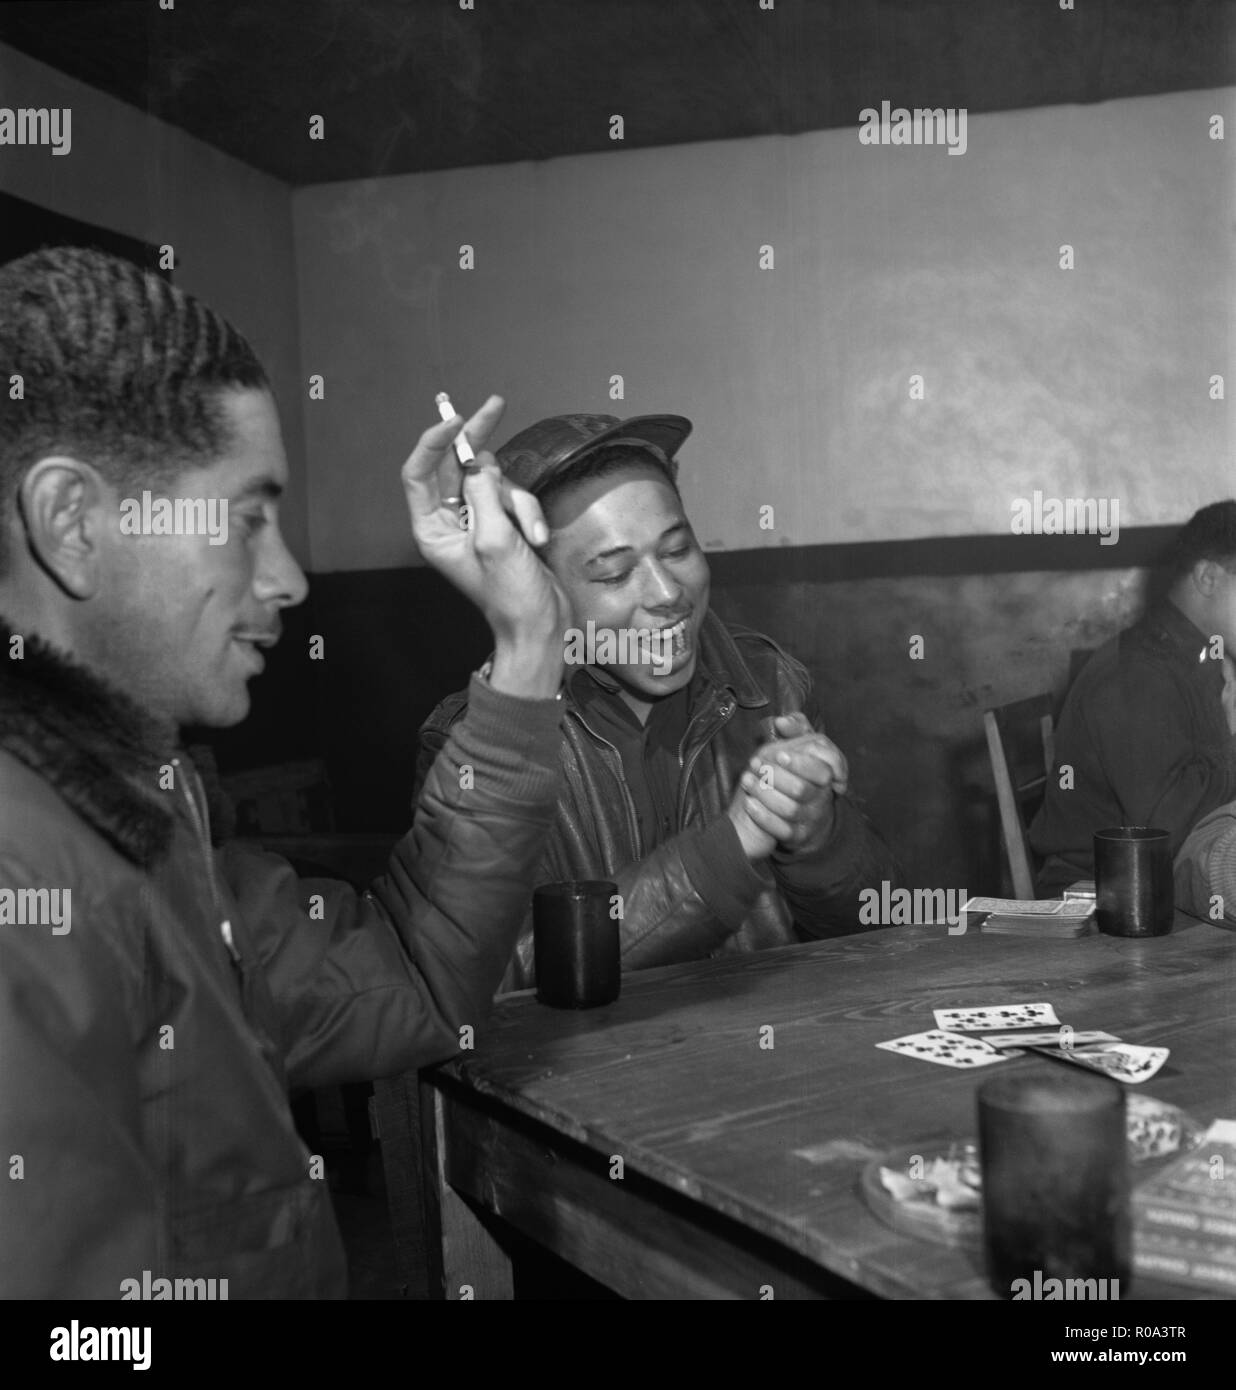 Tuskegee Airmen Playing Cards in Officers' Club, left to right: Walter M. Downs, New Orleans, LA, Class 43-B and William S. Price, III, Topeka, KS, Class 44-C, Ramitelli, Italy, Toni Frissell, March 1945 - Stock Image